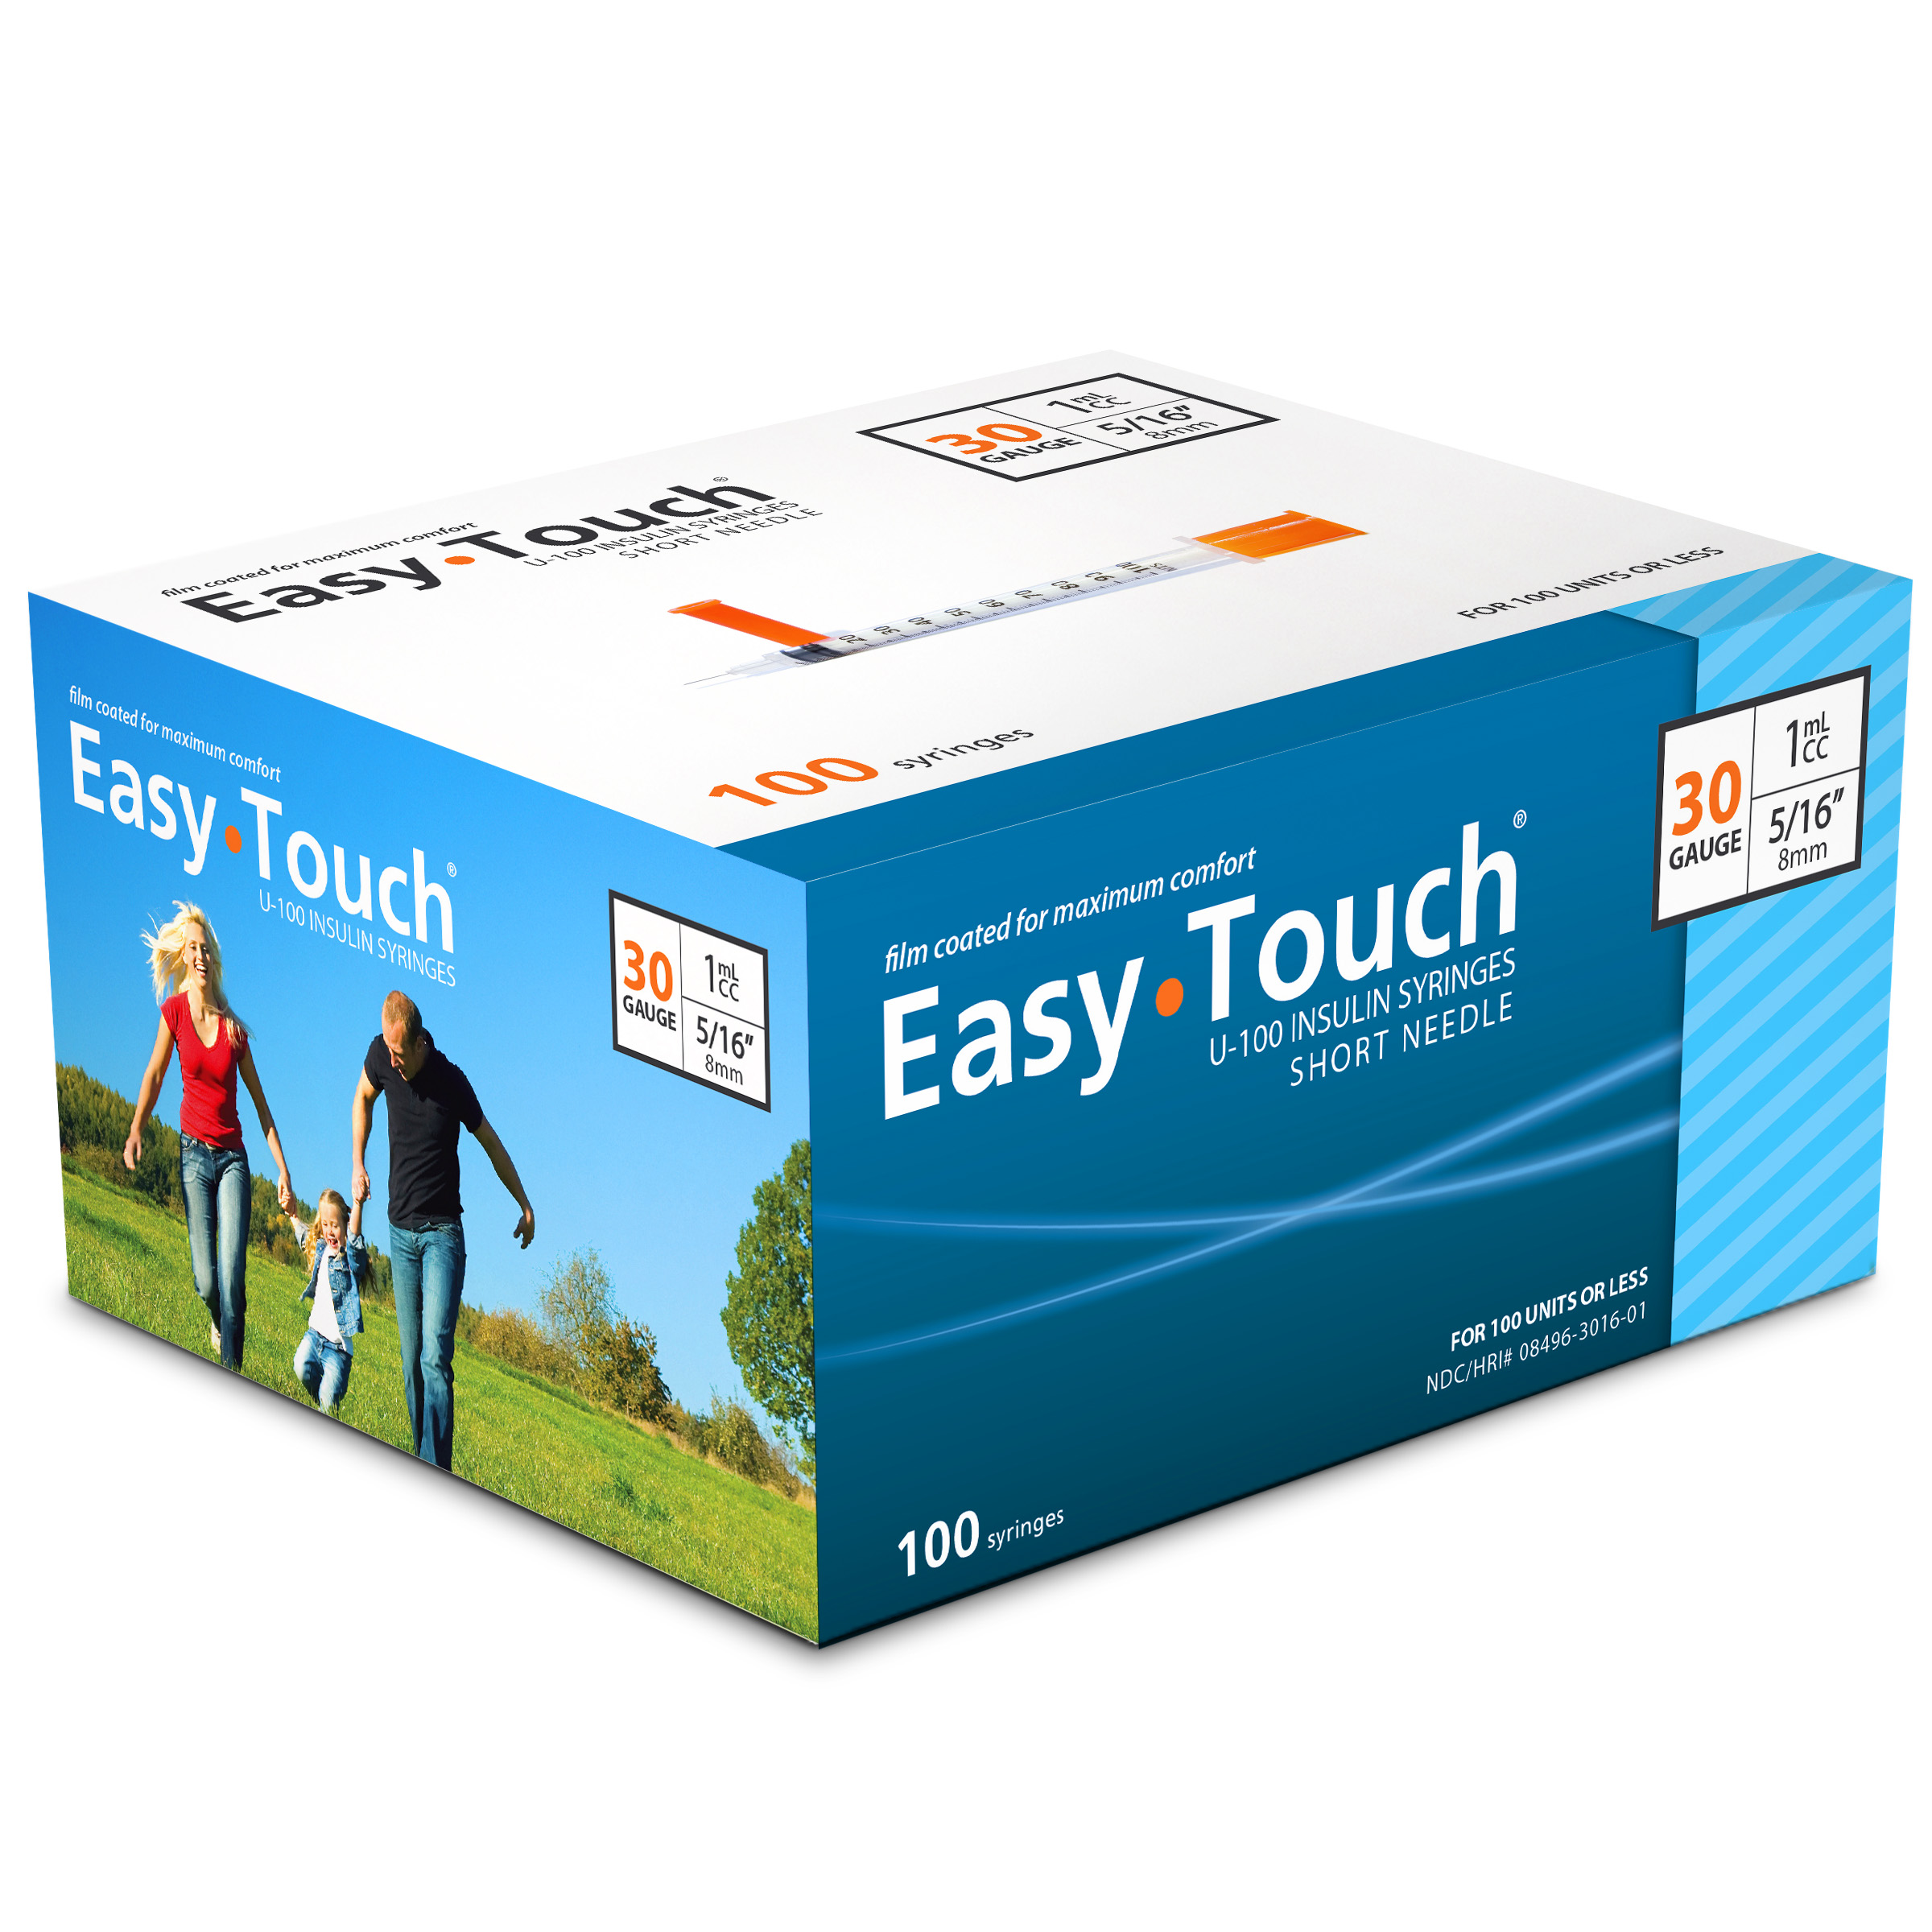 Easy Touch Insu... U 100 Insulin Syringes